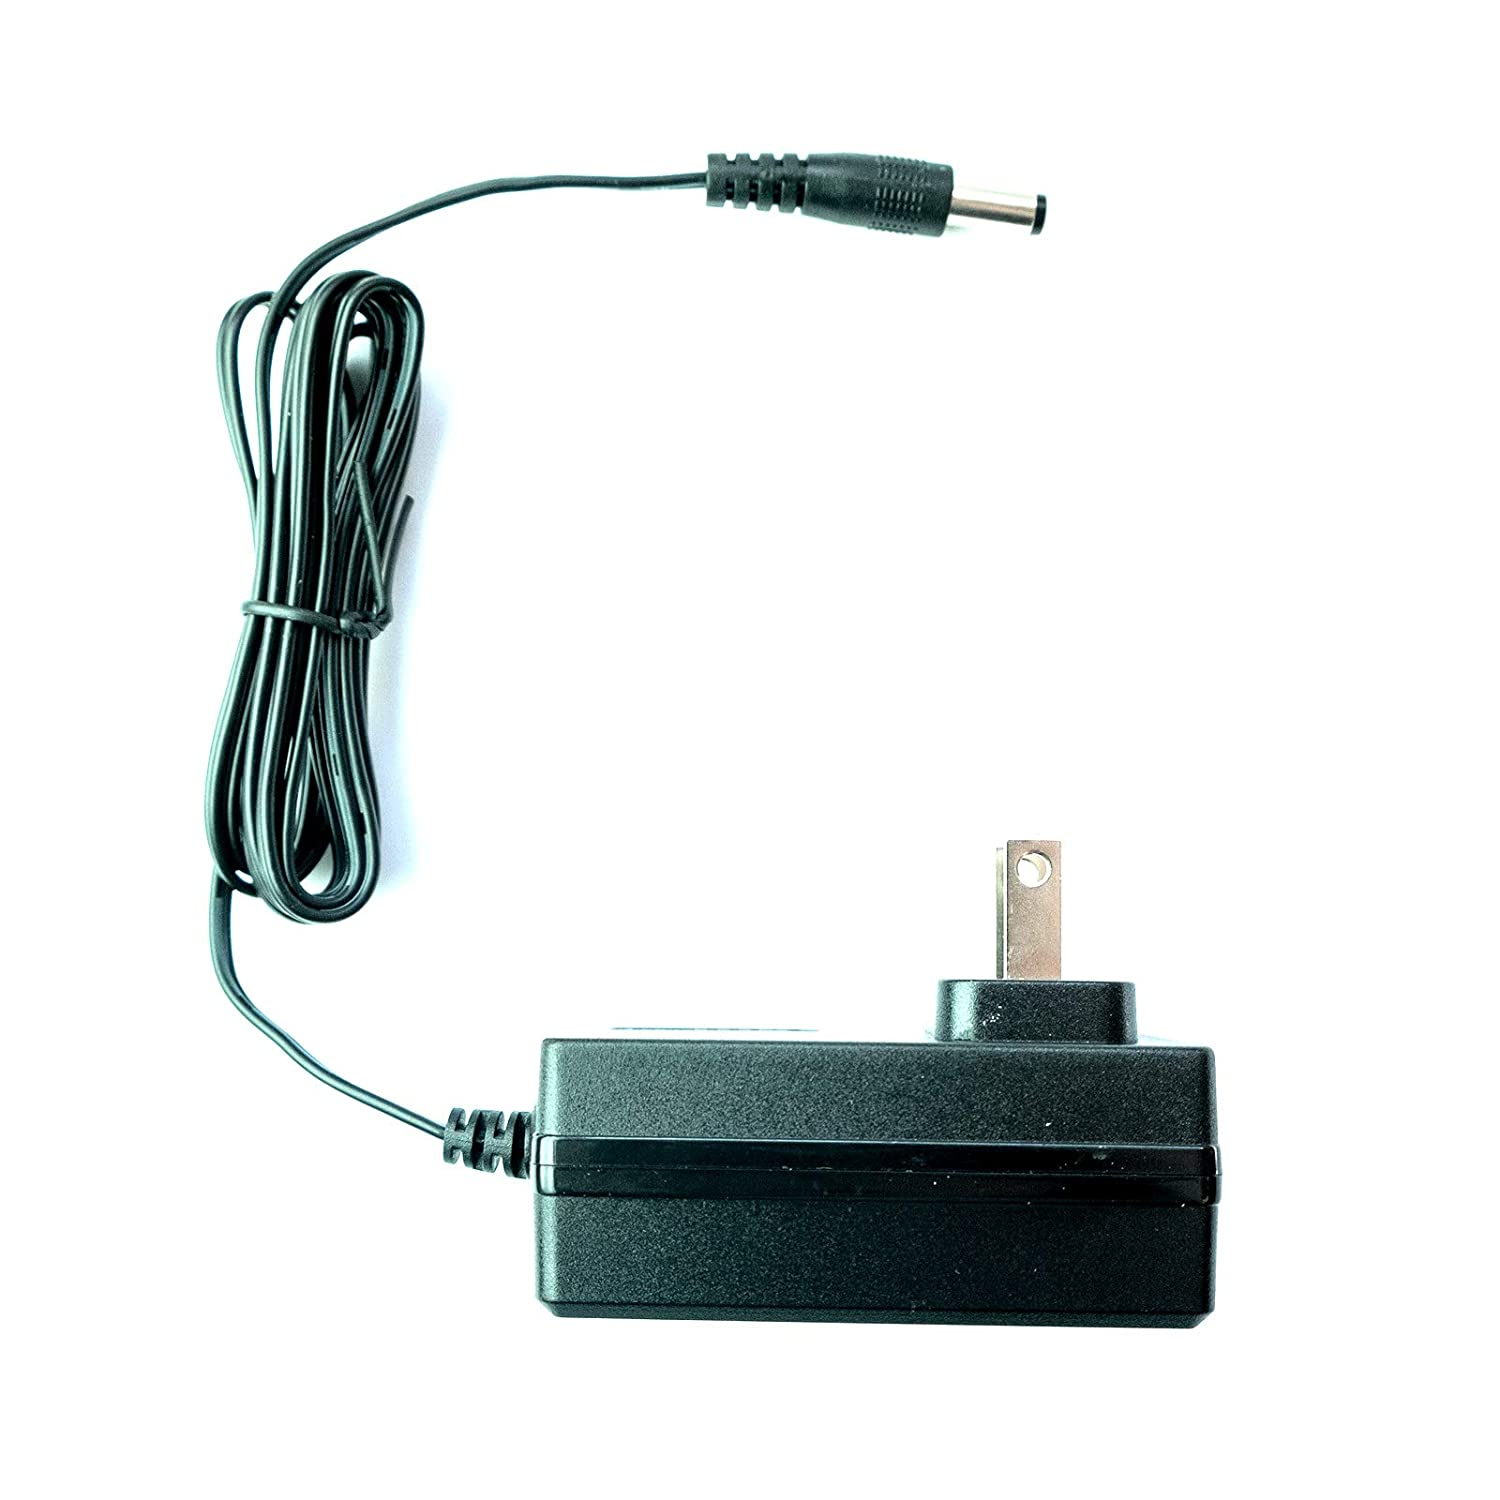 Amazon.com: 12V Vox Mini 3 Amplifier replacement power supply adaptor - US plug: Home Audio & Theater